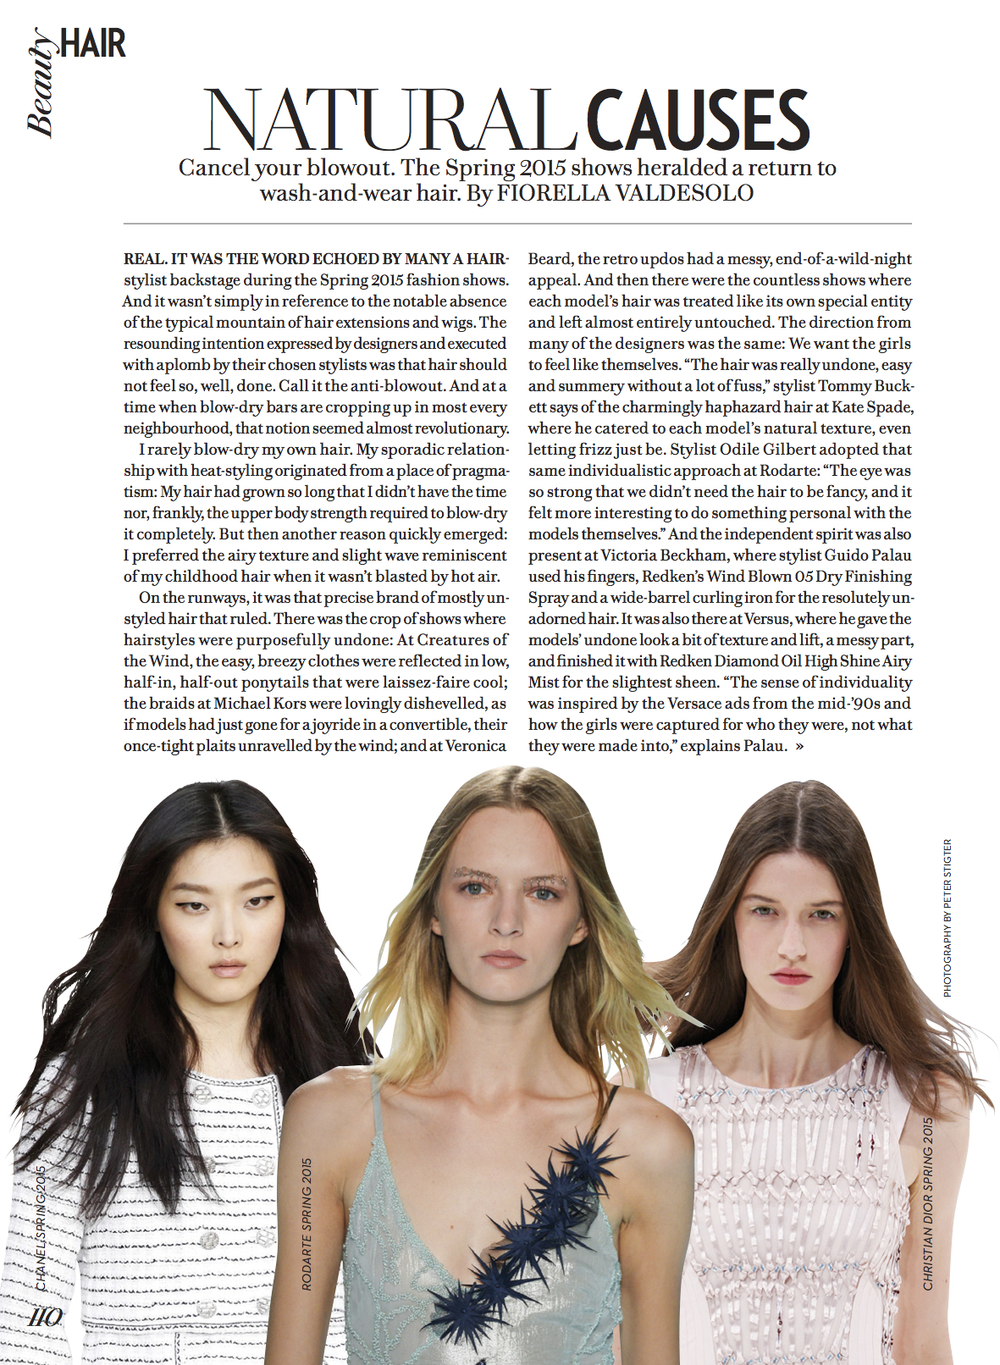 Fashion- Natural Causes April 2015 pg 1.jpg